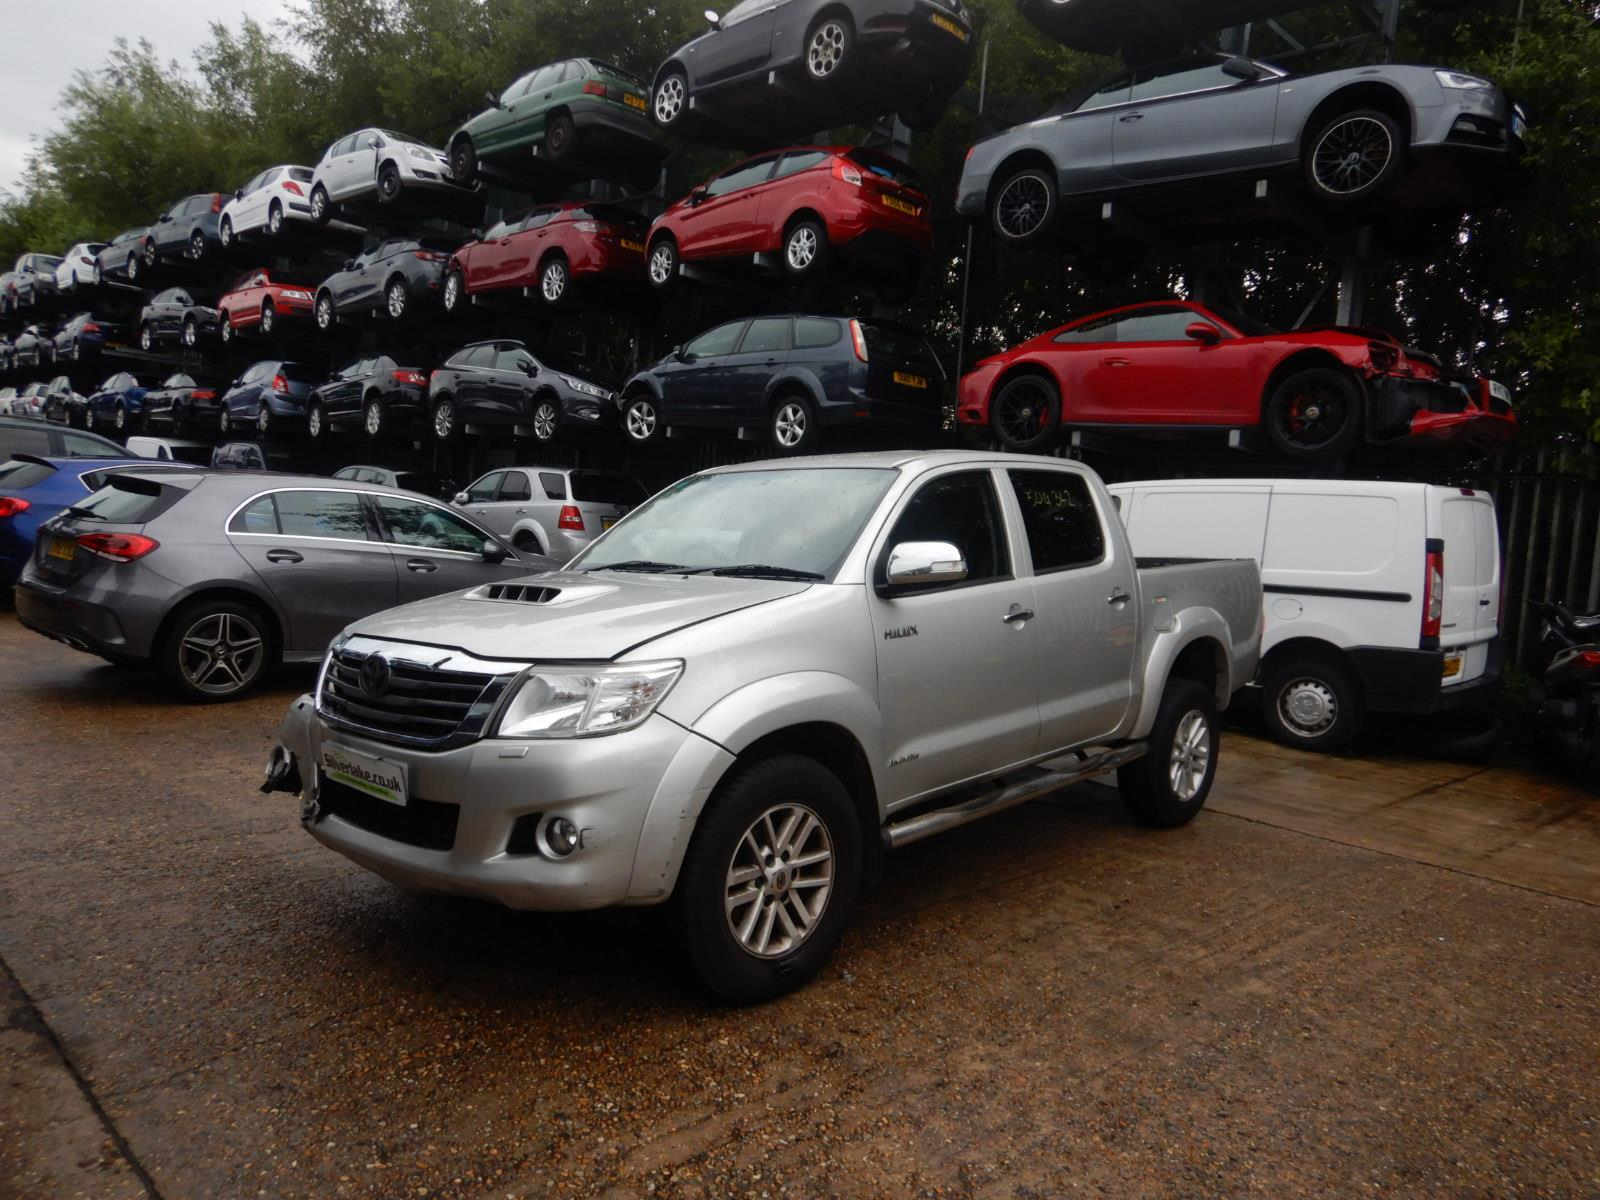 2014 Toyota Hilux Invincible Double Cab D-4D 2982cc Turbo Diesel Automatic 5 Speed Pick-Up